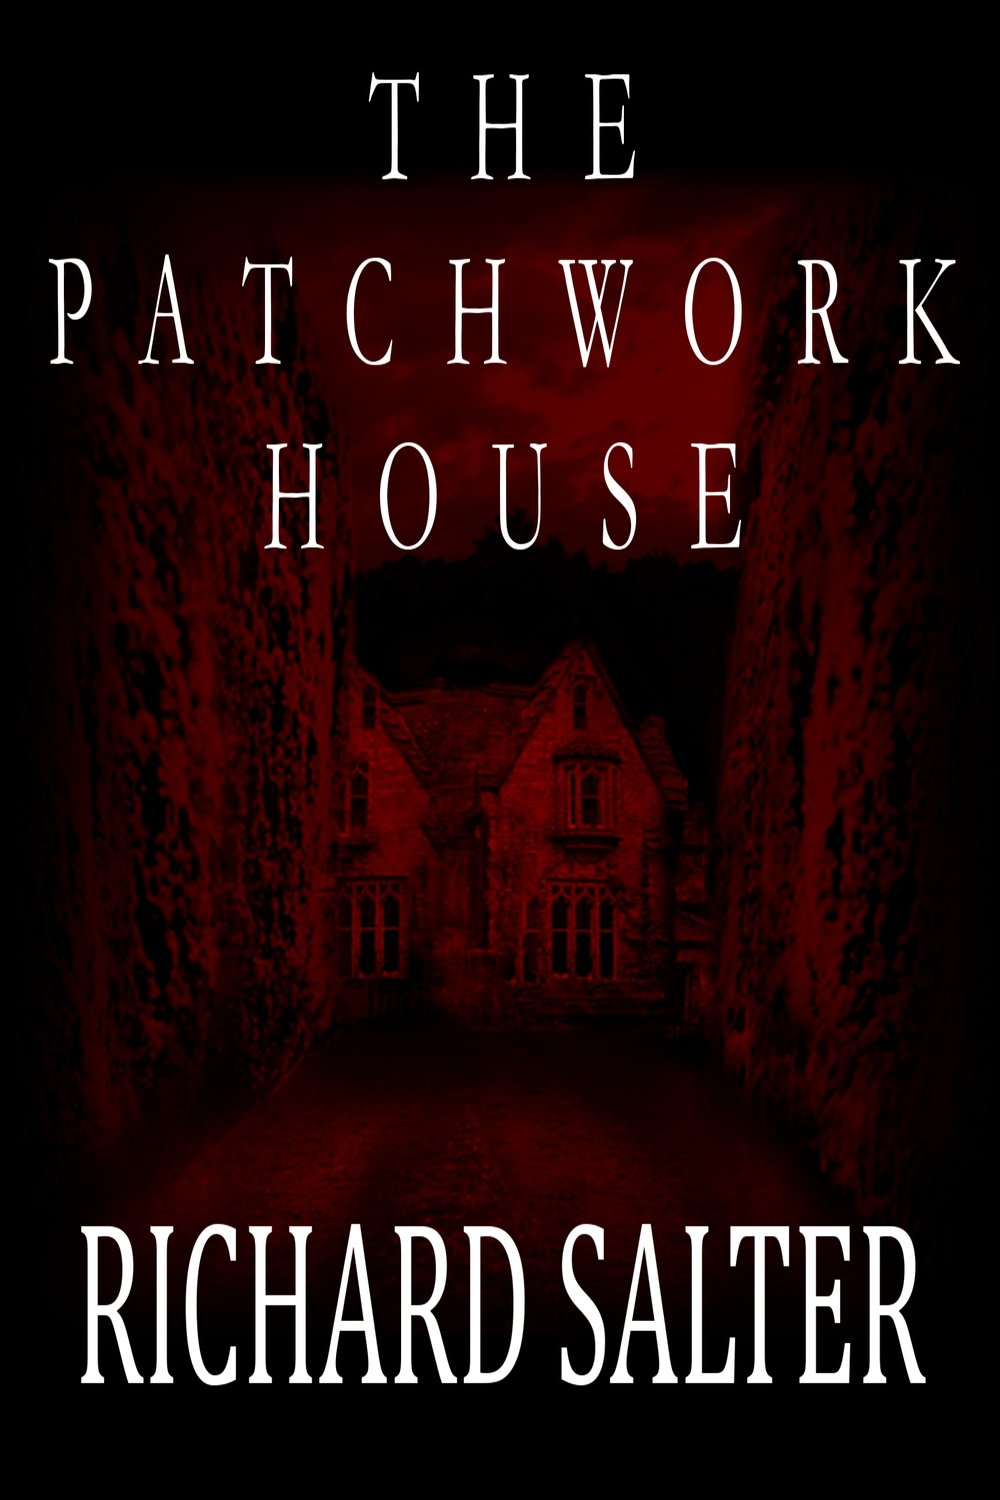 The Patchwork House by Richard Salter (eBook edition)